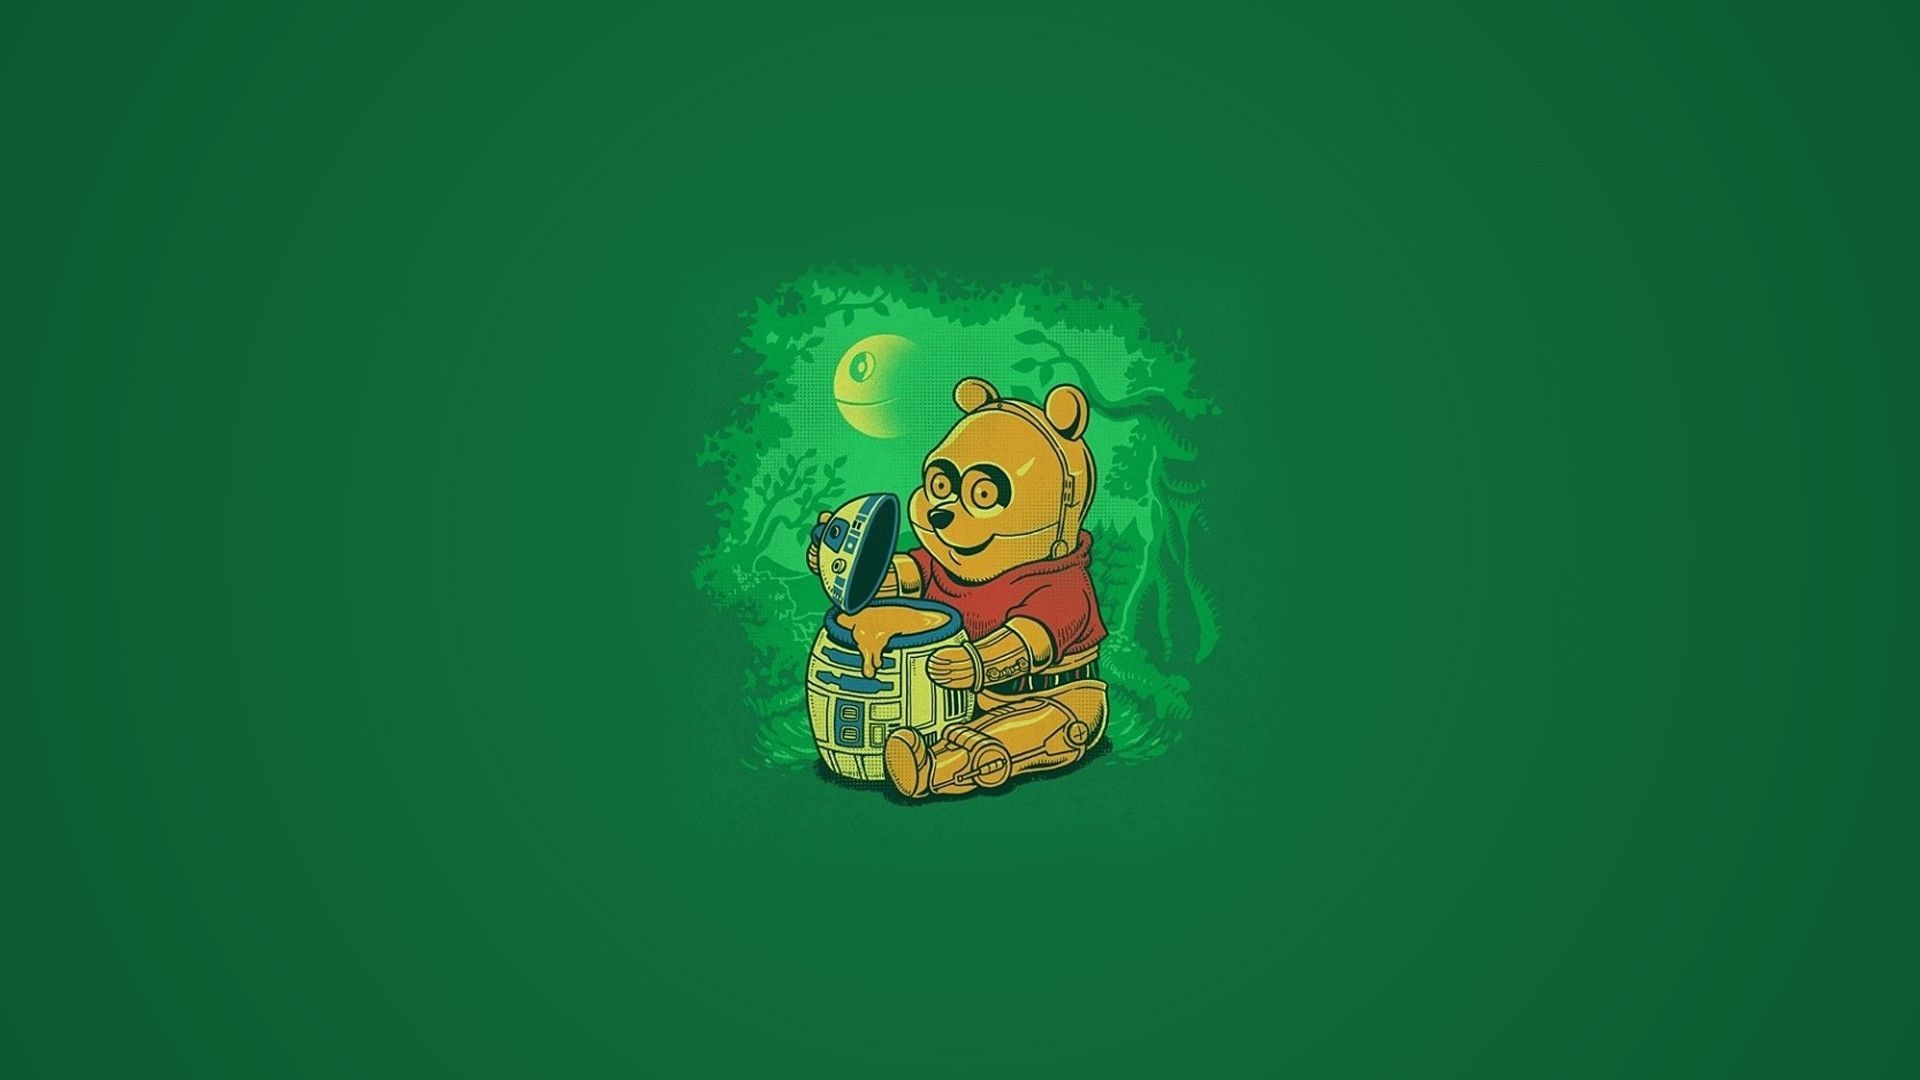 Winnie The Pooh Star Wars Crossover Wallpaper Funny Star Wars Background 1236173 Hd Wallpaper Backgrounds Download